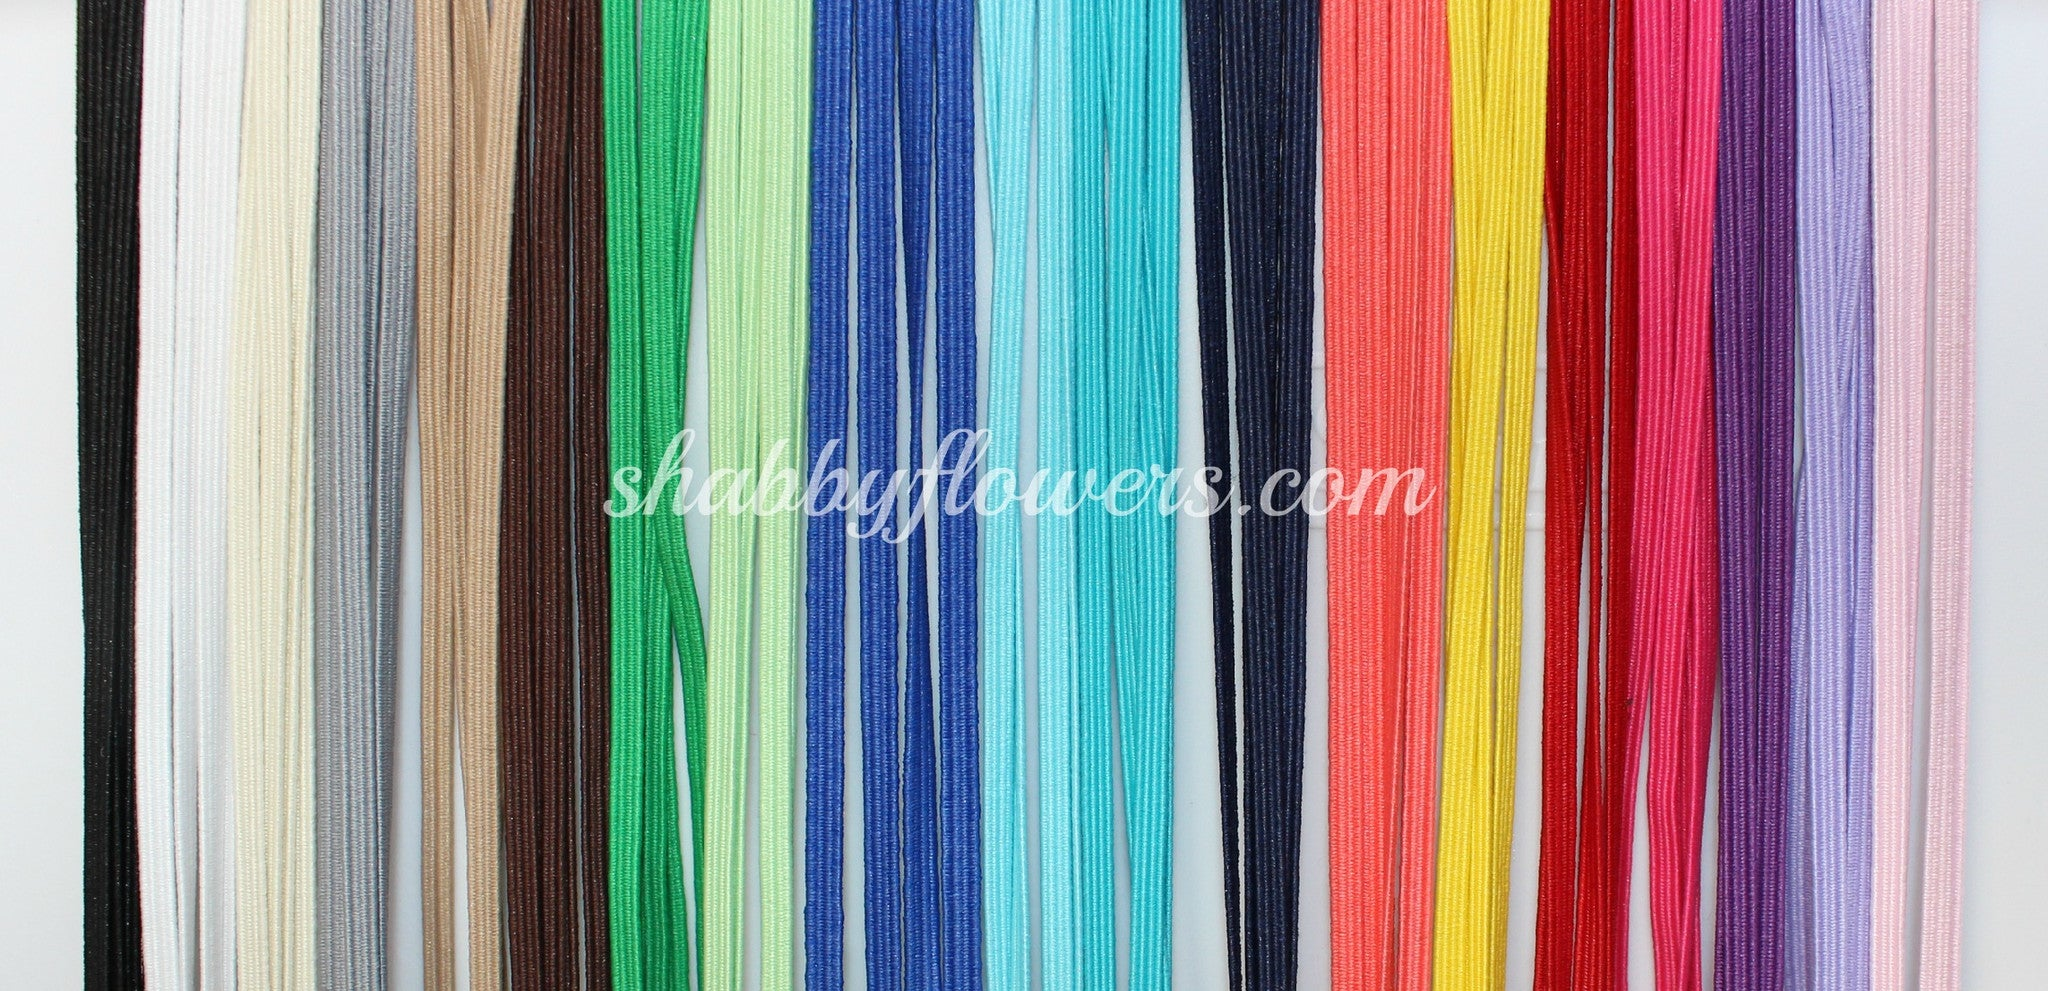 Elastic Pack - Skinny Elastic Pack of 20 Colors (5 yards each color) - shabbyflowers.com